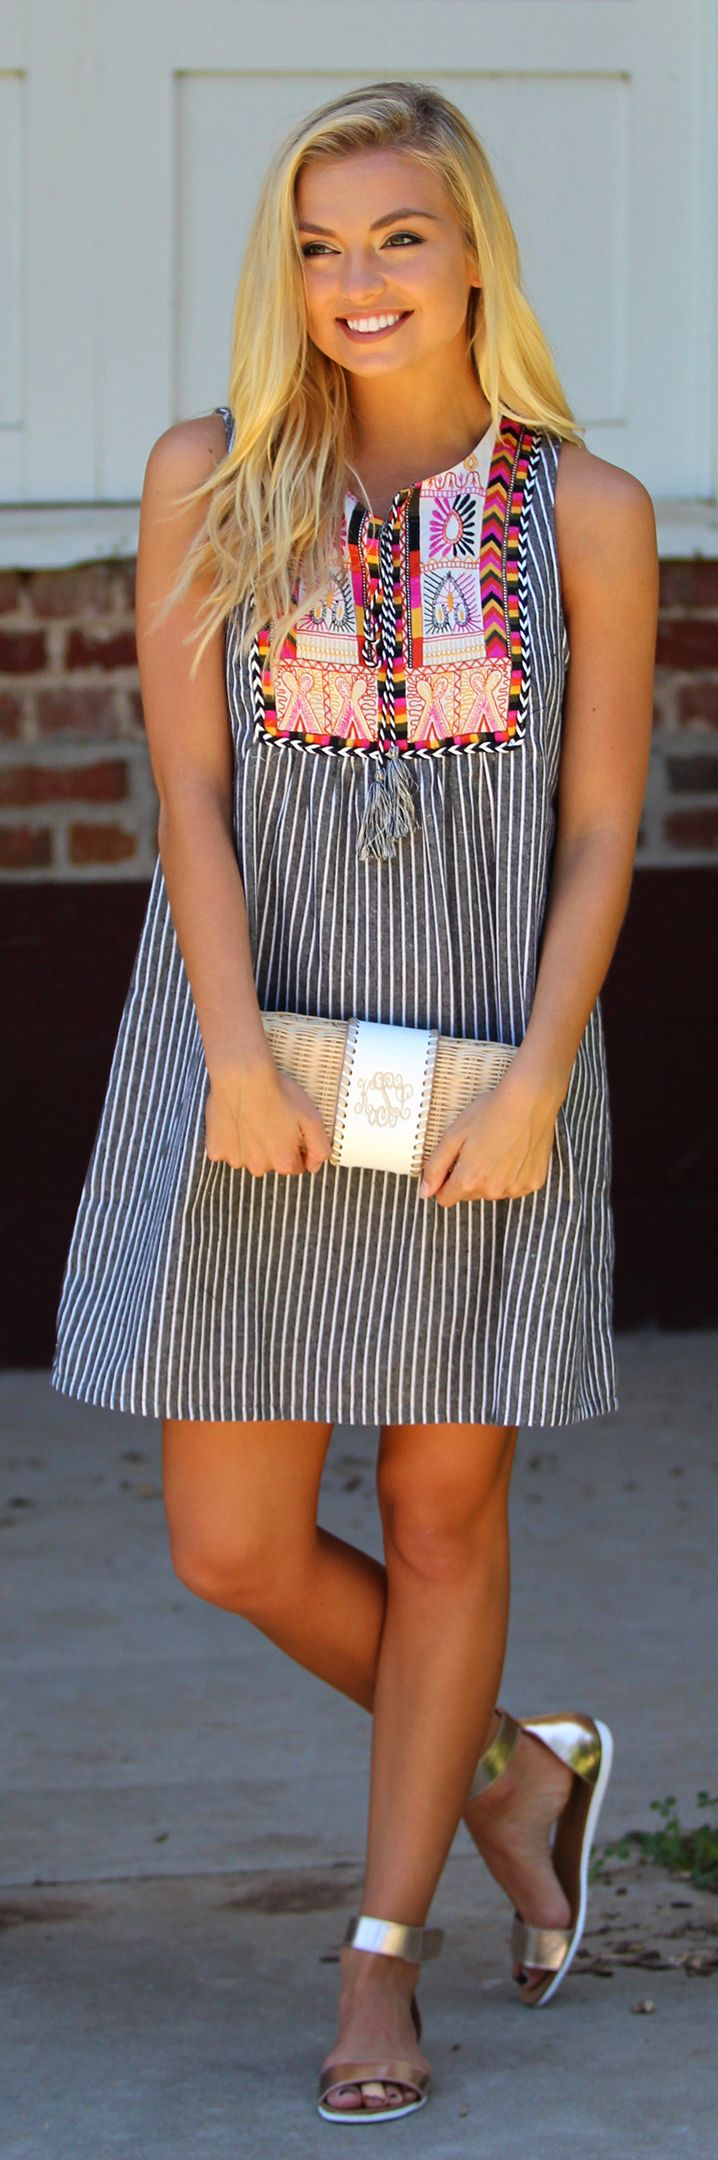 Accessorize any outfit with this adorable Monogrammed Wicker Clutch that's ON SALE!